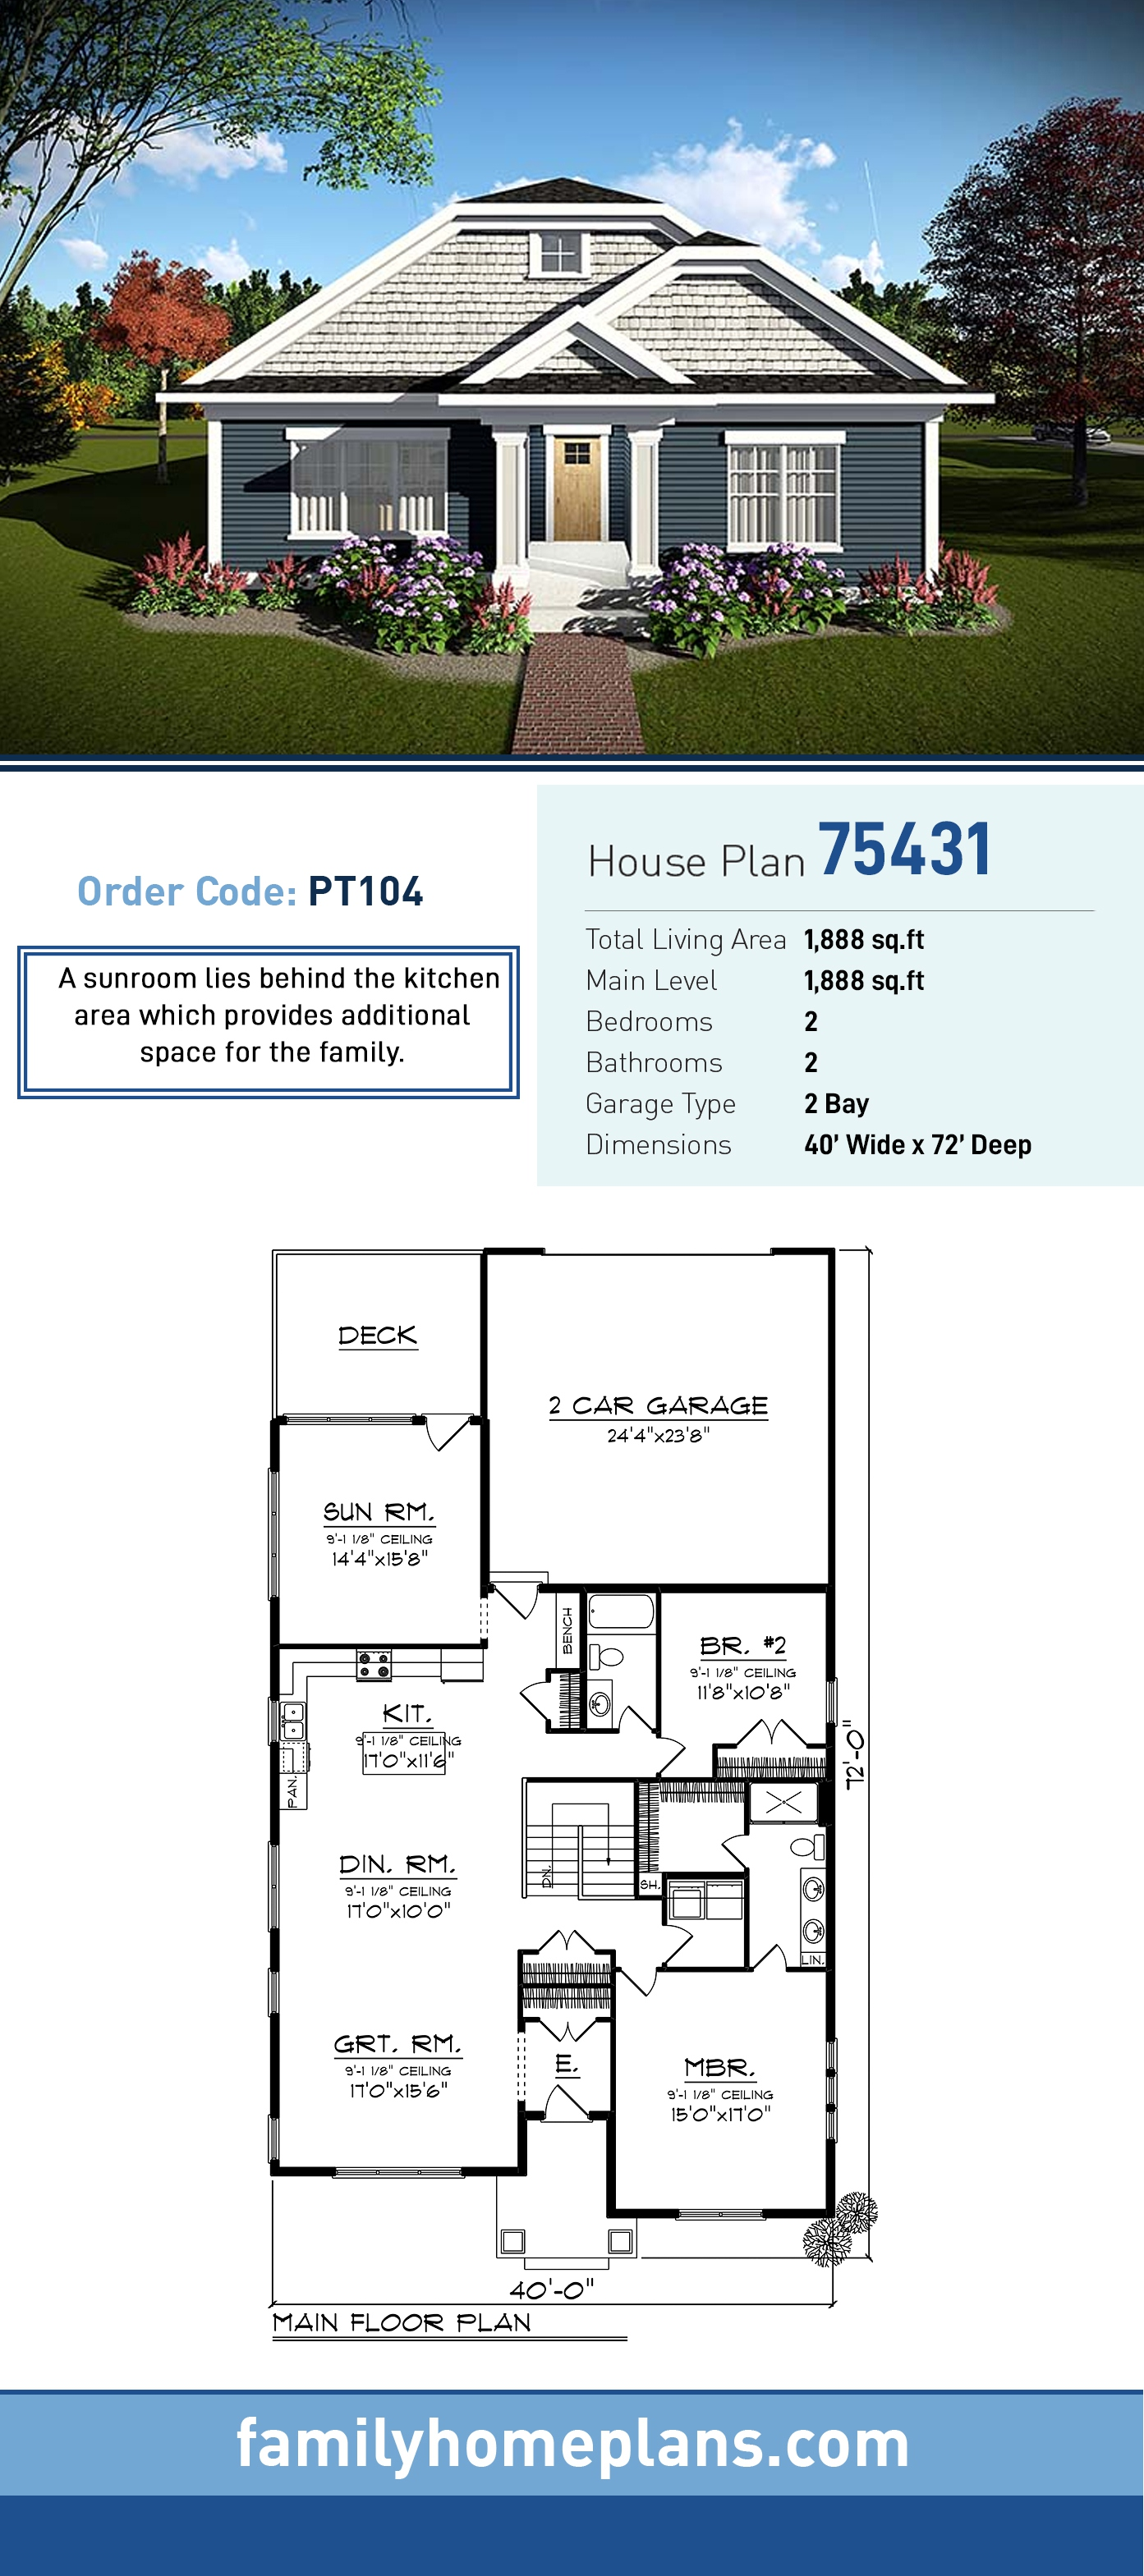 Cottage, Country House Plan 75431 with 2 Beds, 2 Baths, 2 Car Garage